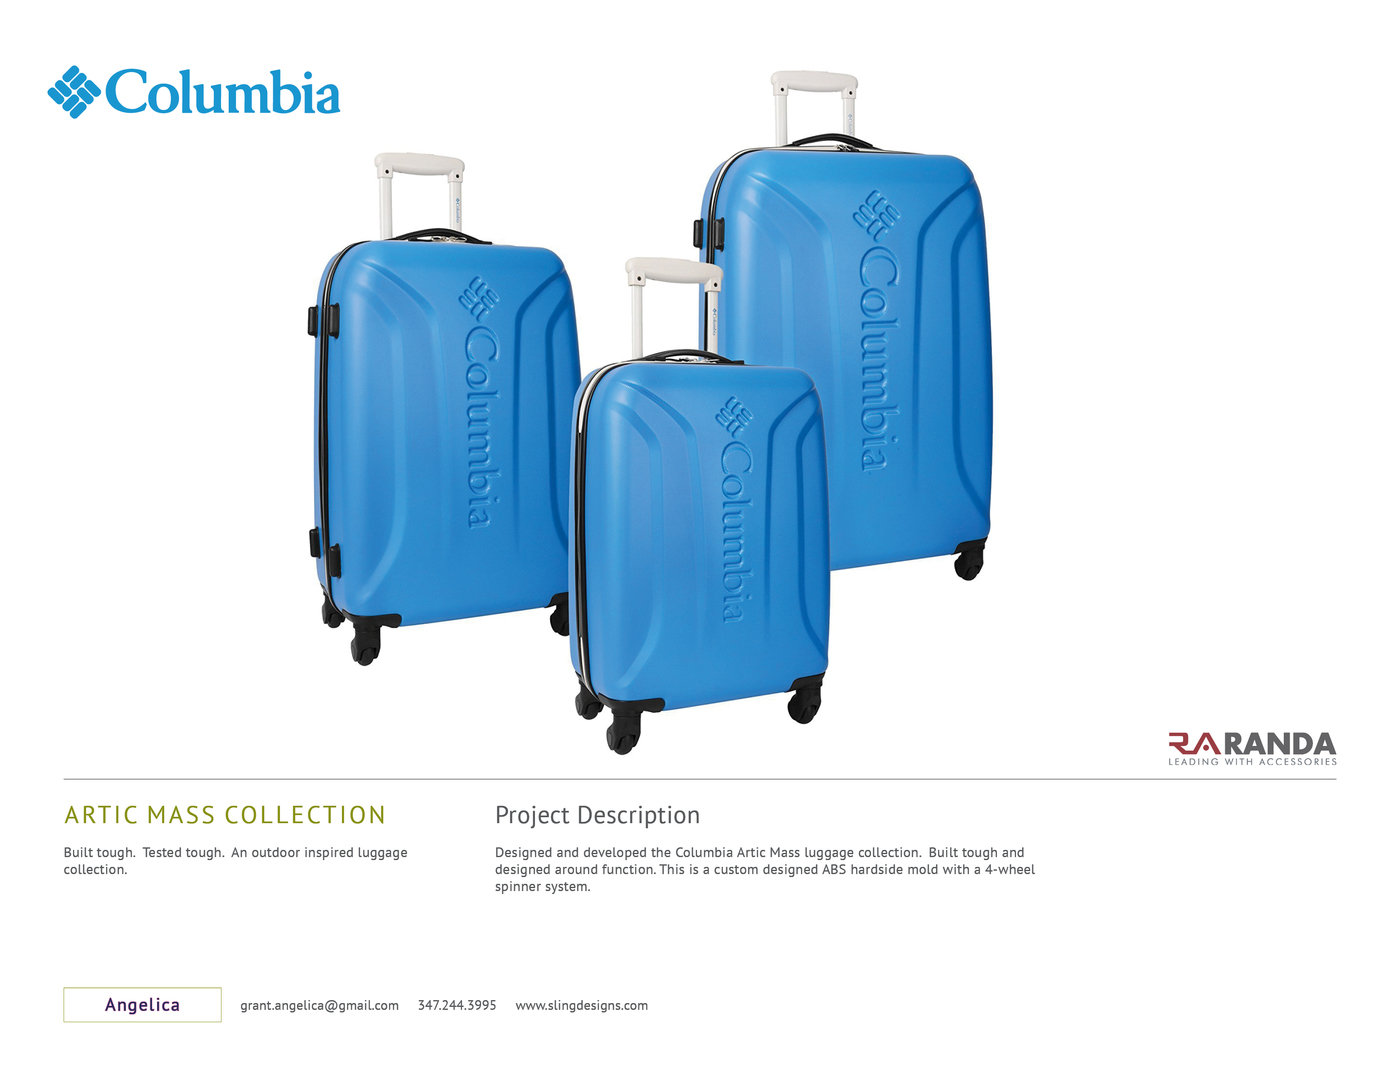 8f049a21f84dea ORDER TODAY- https   www.amazon.com Columbia -Artic-Mass-Piece-Luggage dp B01KMOW6NM ref sr 1 21 s apparel ie UTF8 qid 1480896156 sr  1-21 nodeID  ...